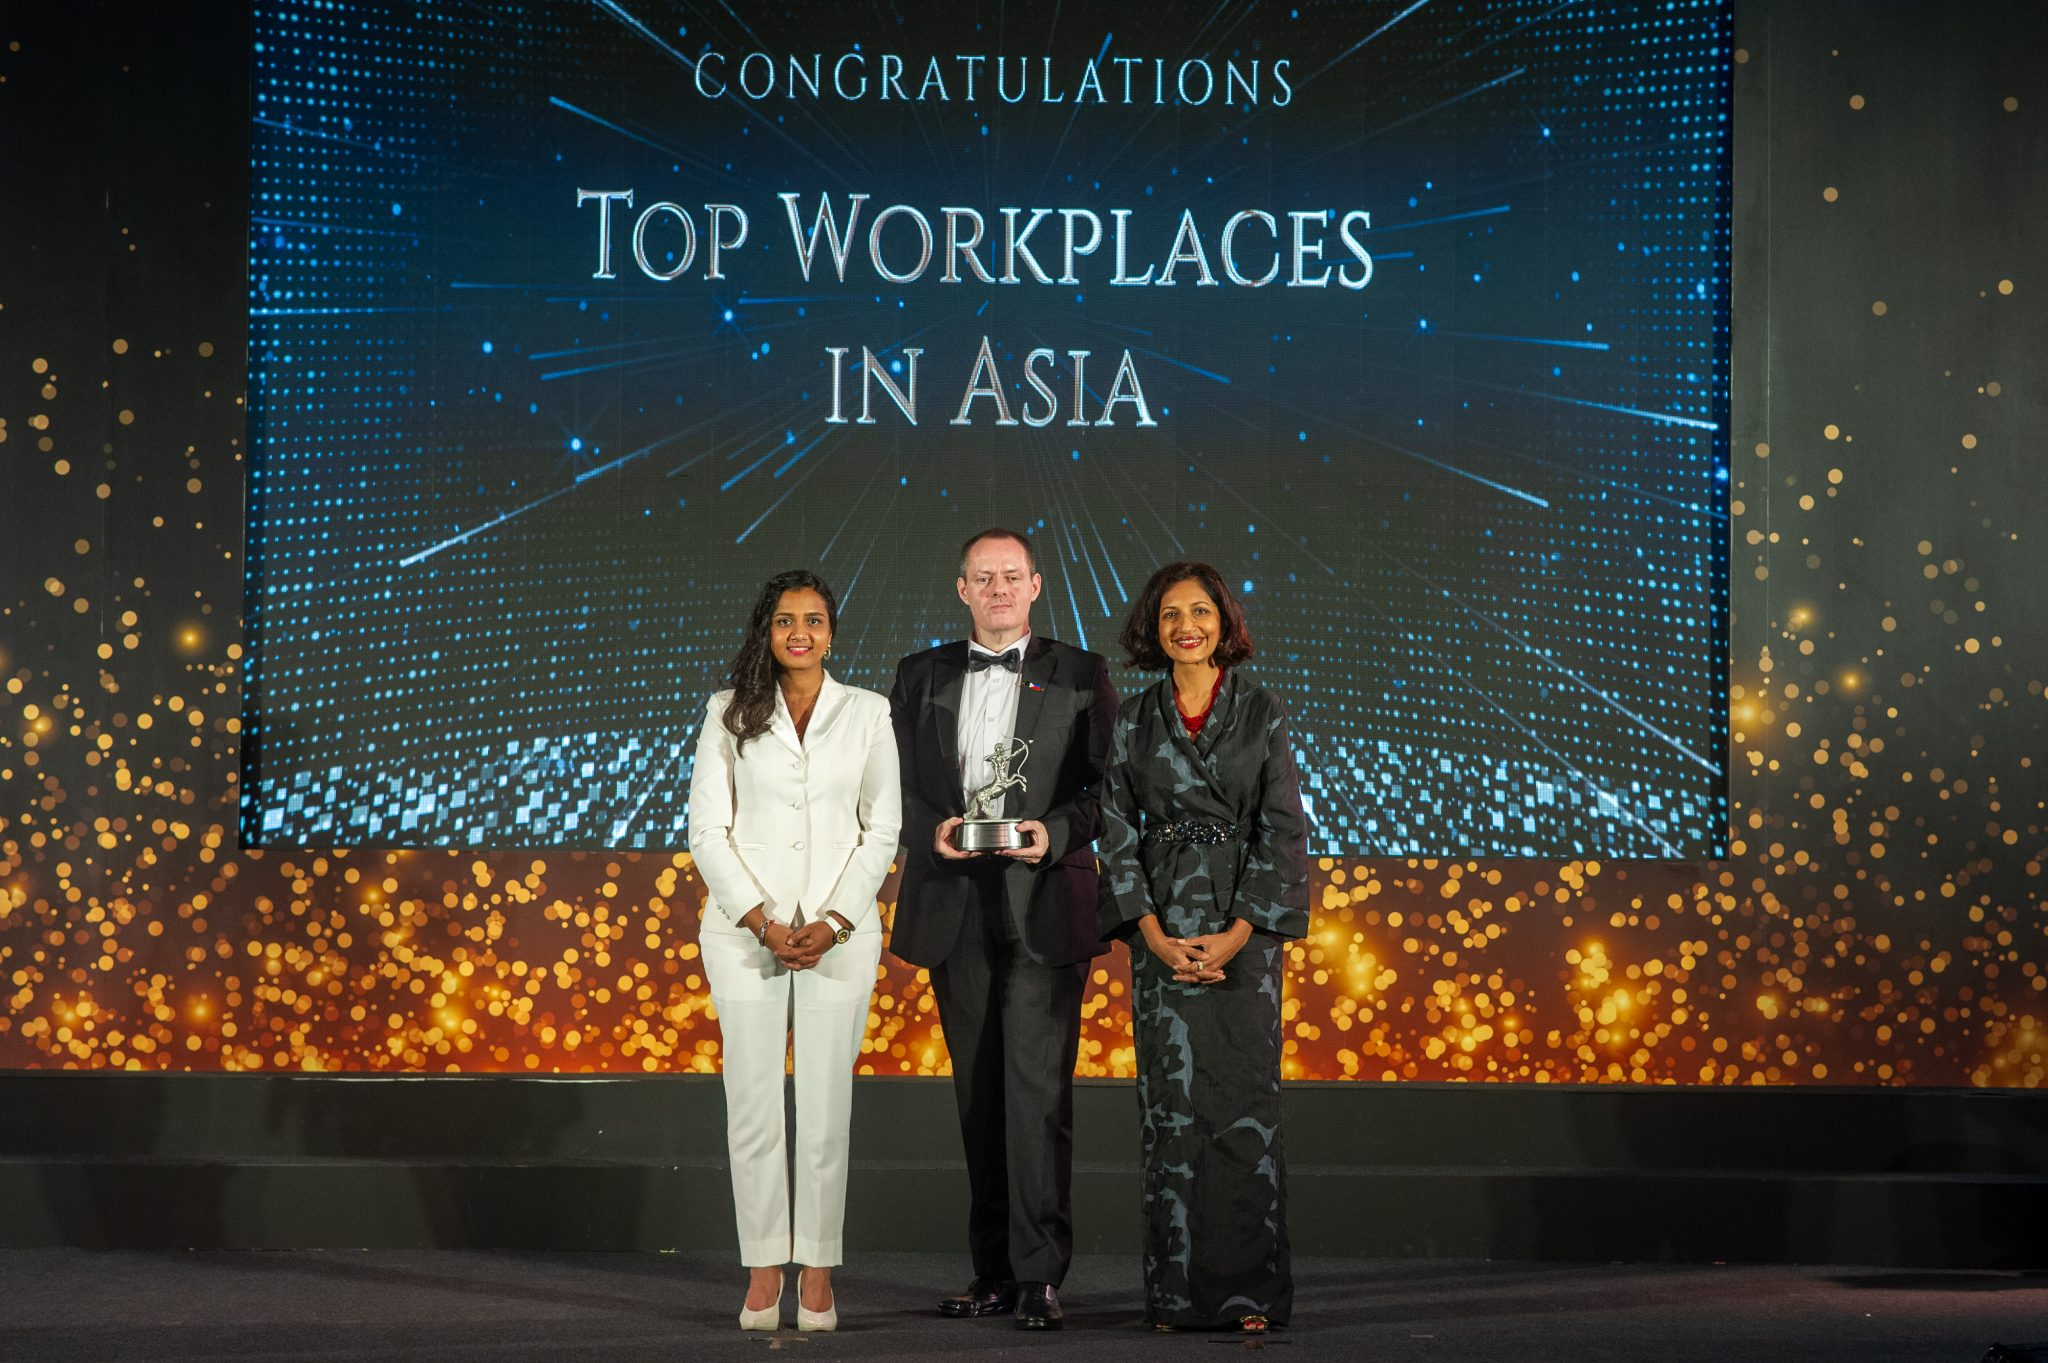 Named Top Workplace in Asia